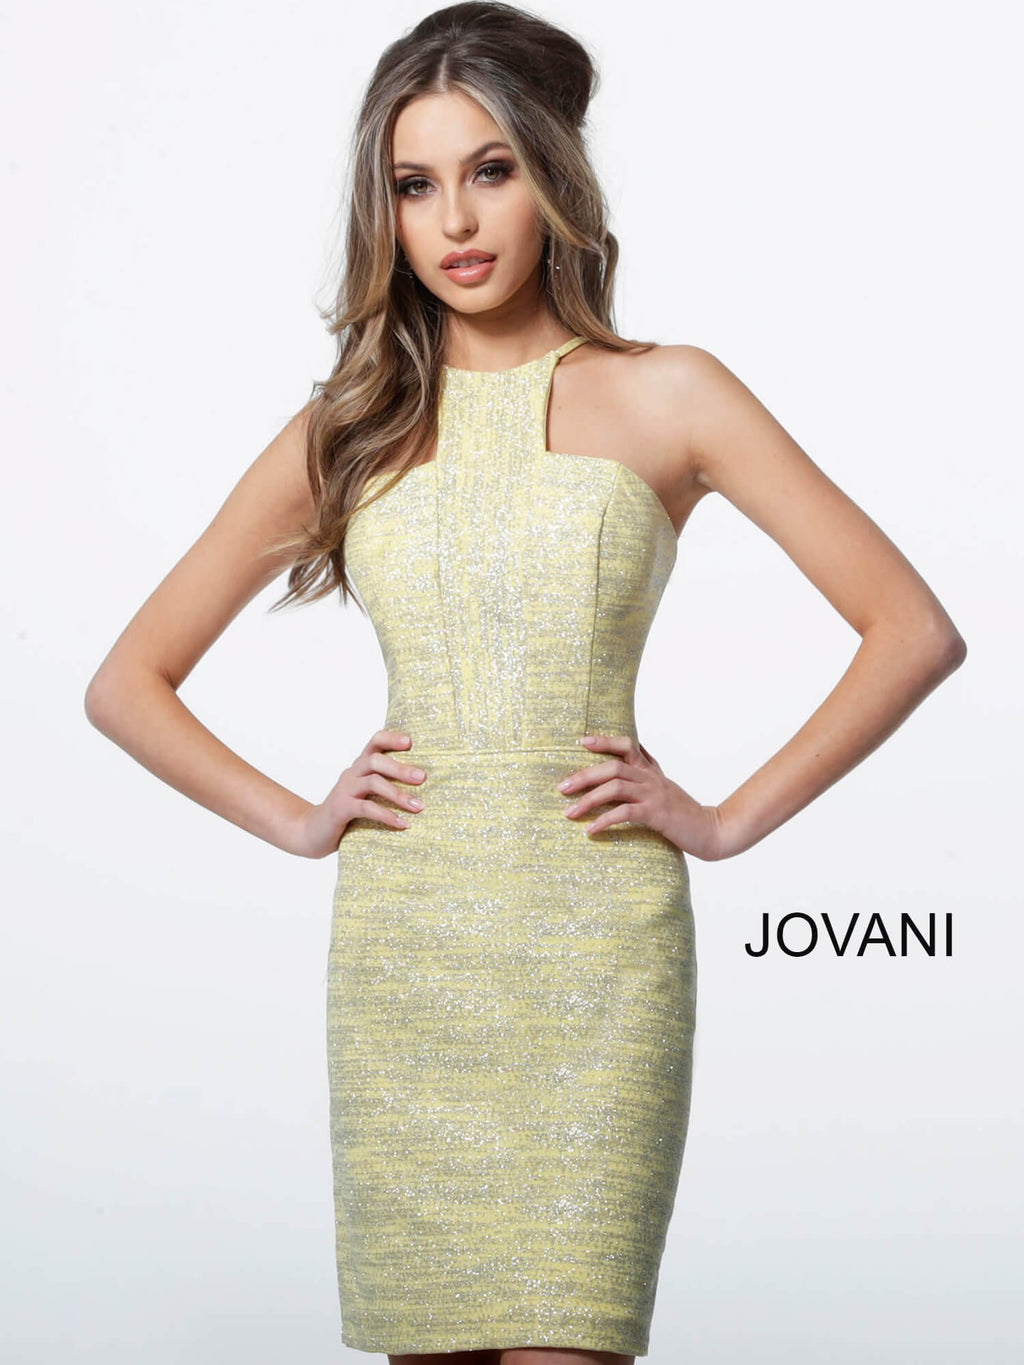 JOVANI 1558 Glitter Cocktail Dress - CYC Boutique